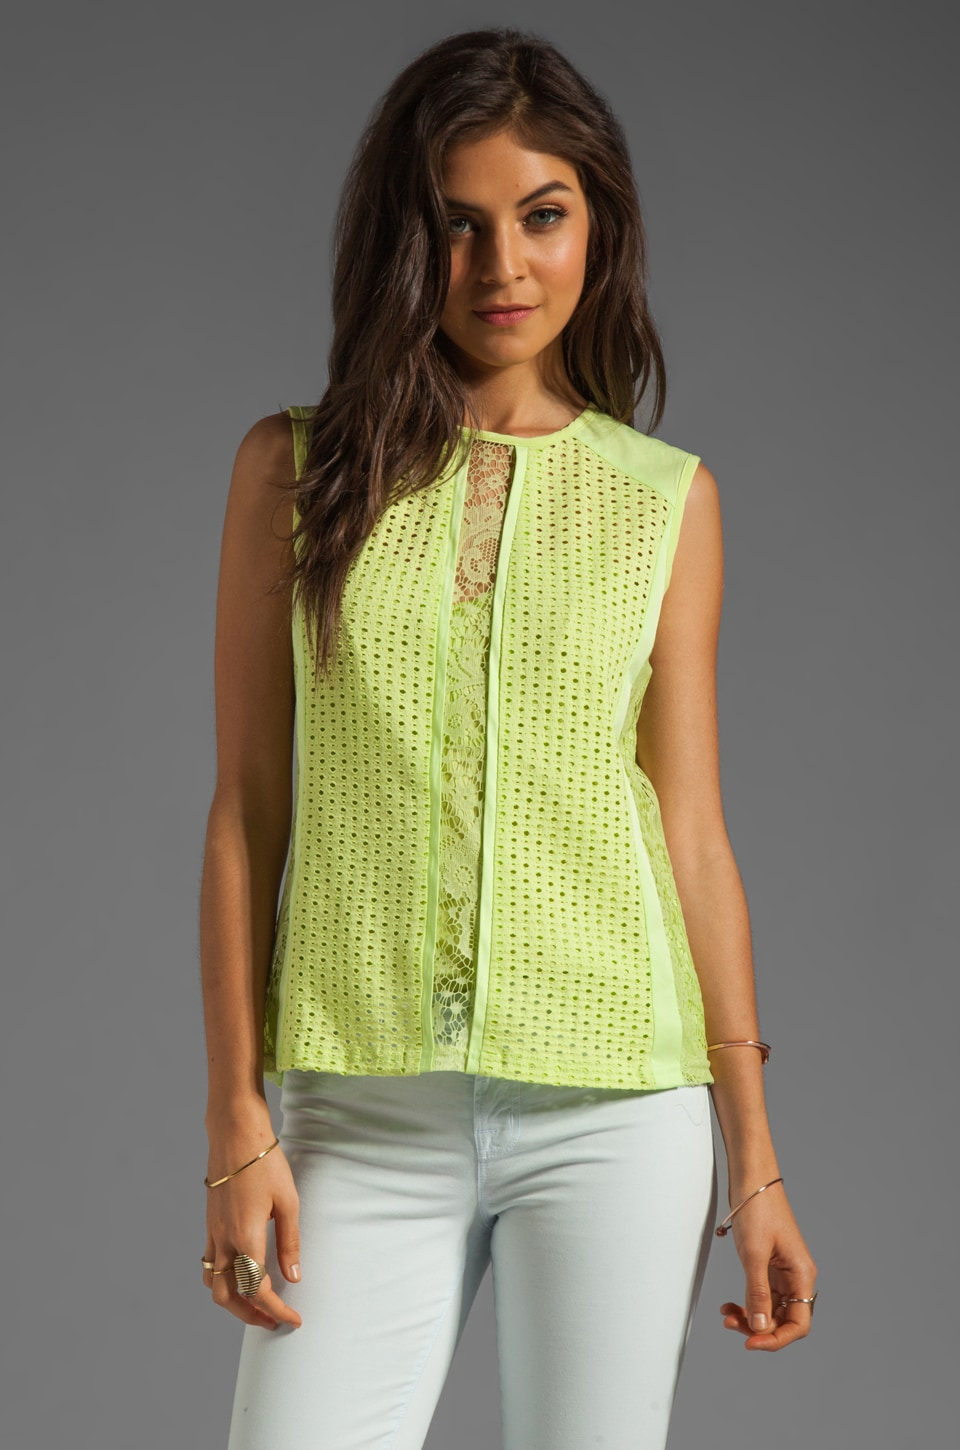 Nanette Lepore Original Mix Top in Lime